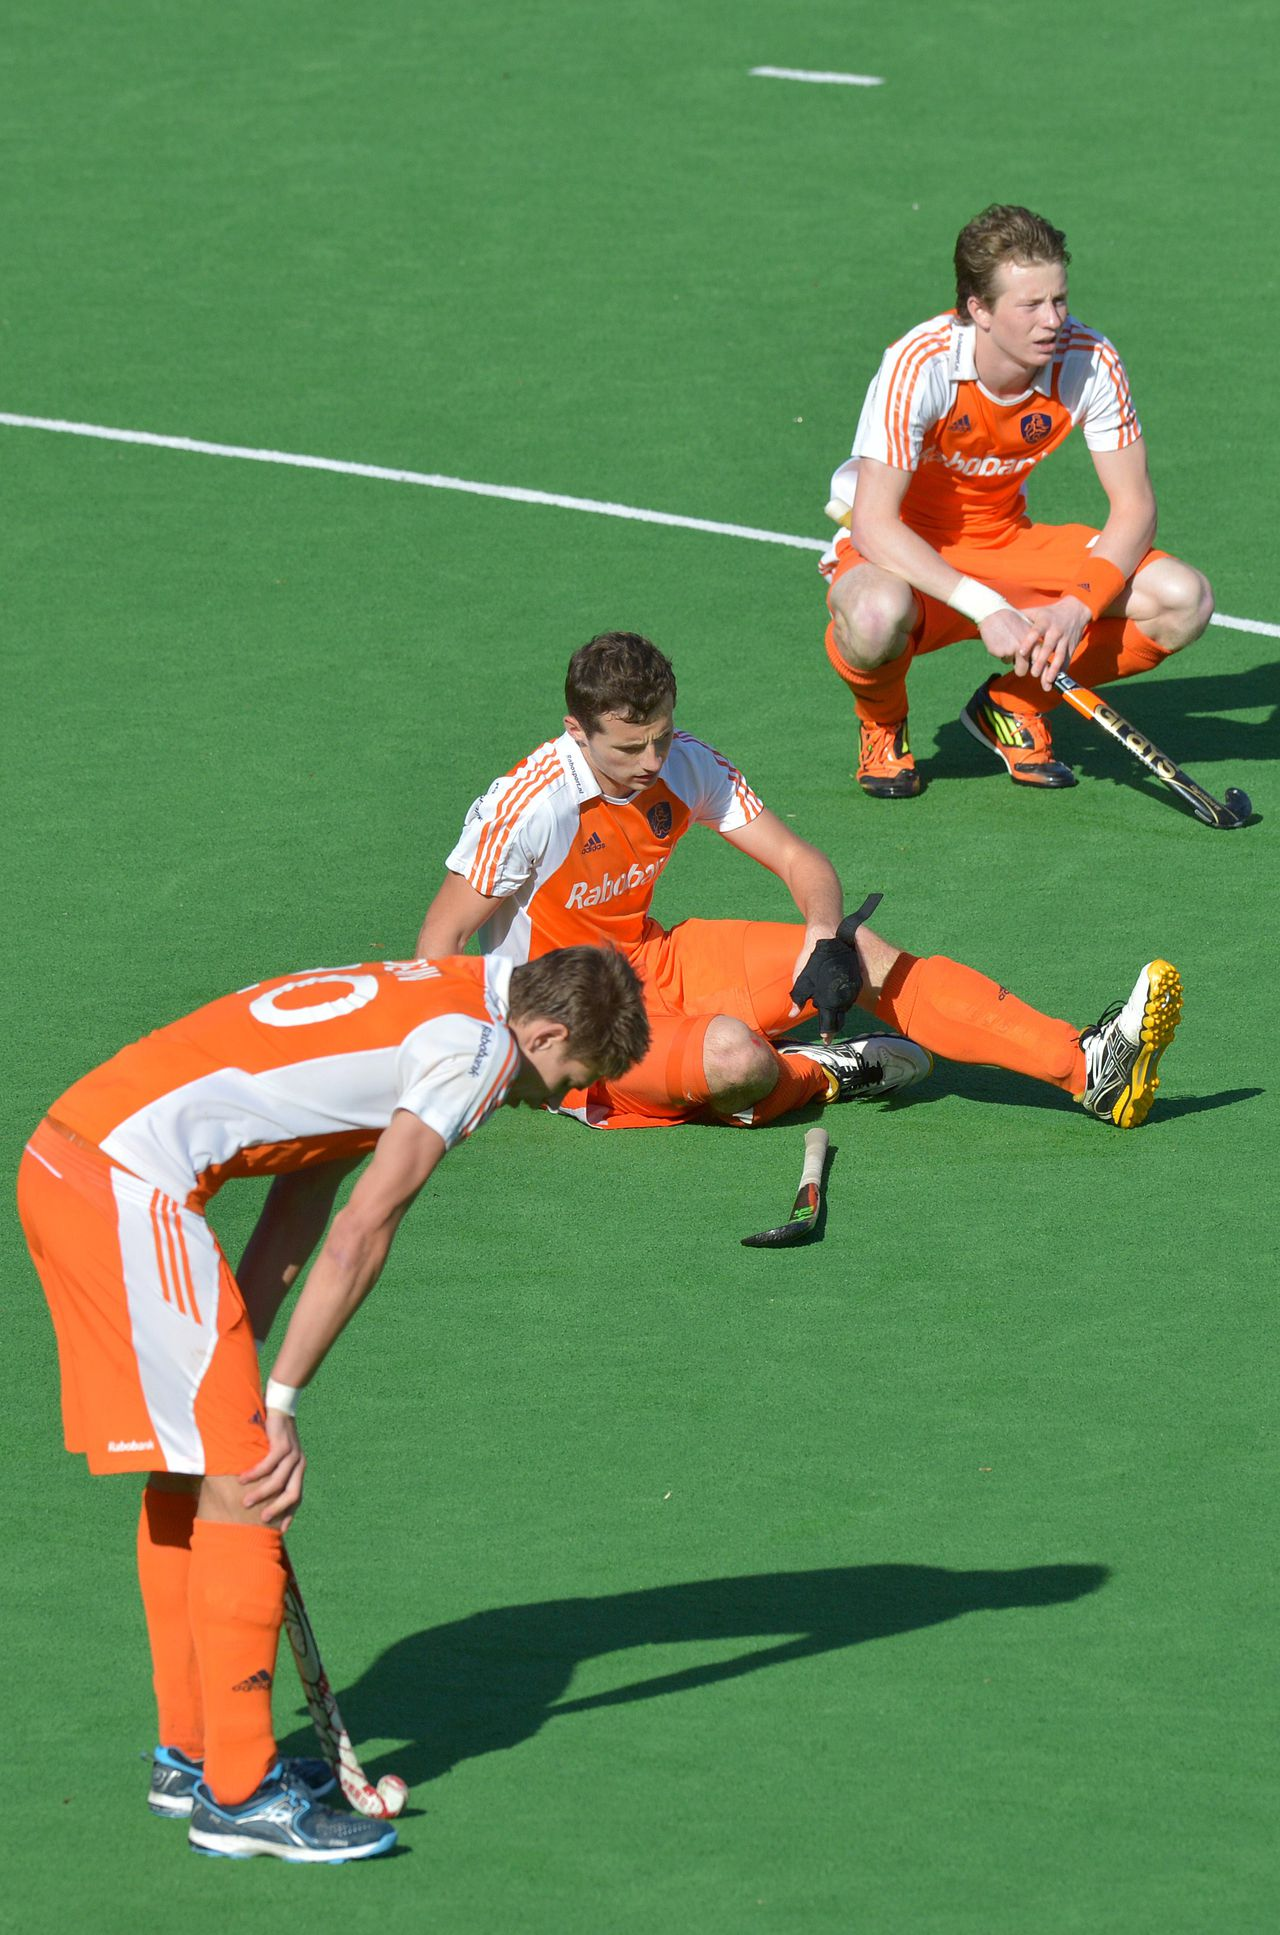 Sander de Wijn (L), Sander Baart (C) and Seve van Ass of the Netherlands react after Australia scored a golden goal in extra time in the gold medal match to win the men's Hockey Champions Trophy tournament in Melbourne on December 9, 2012. Australia won the match 2-1 in extra time. IMAGE STRICTLY RESTRICTED TO EDITORIAL USE - STRICTLY NO COMMERCIAL USE AFP PHOTO/Paul CROCK